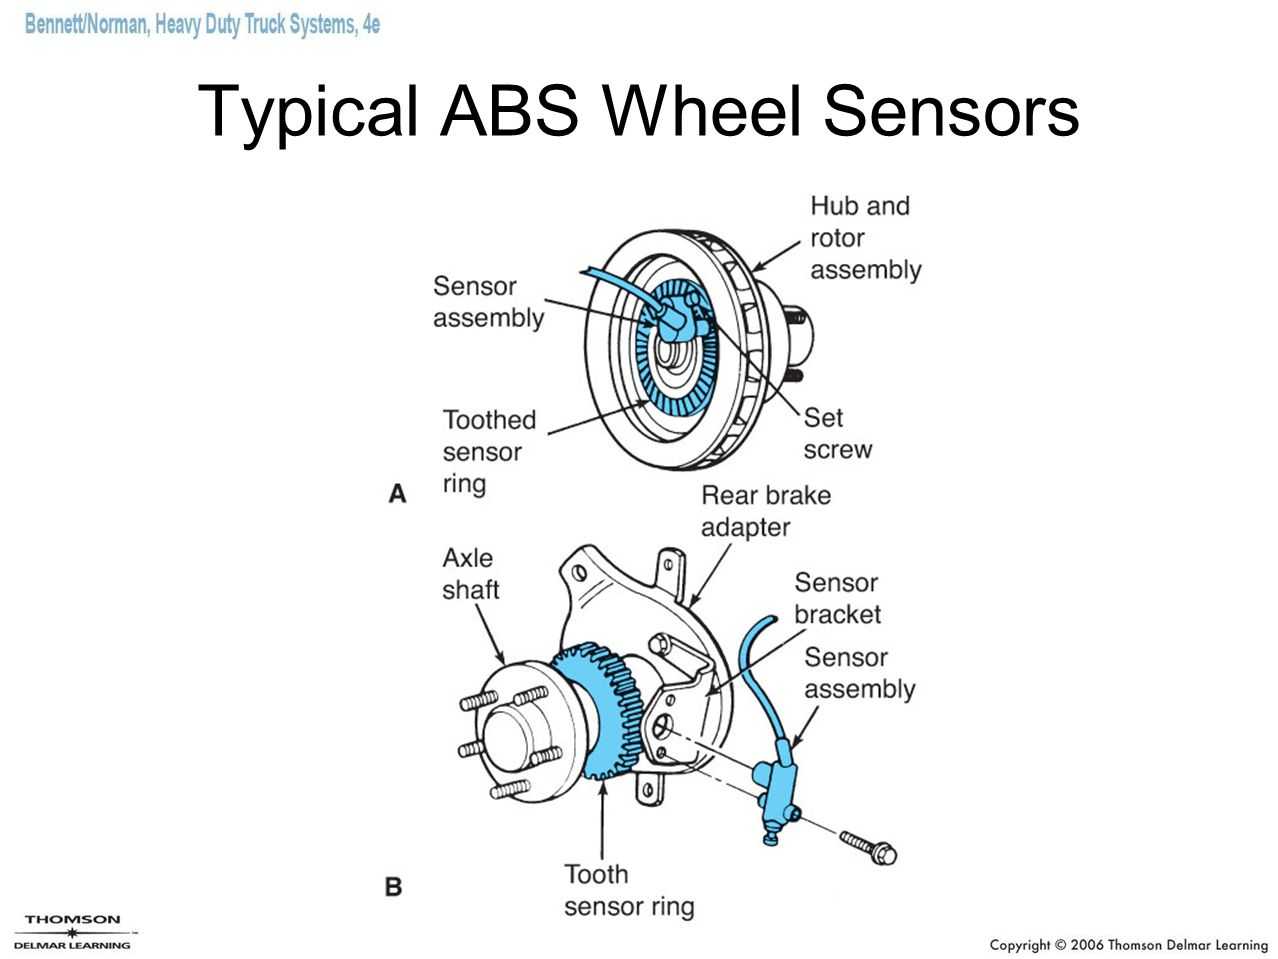 Hydraulic Brakes And Air Over Brake Systems Ppt Video Exploded Diagram Of Drum 35 Typical Abs Wheel Sensors